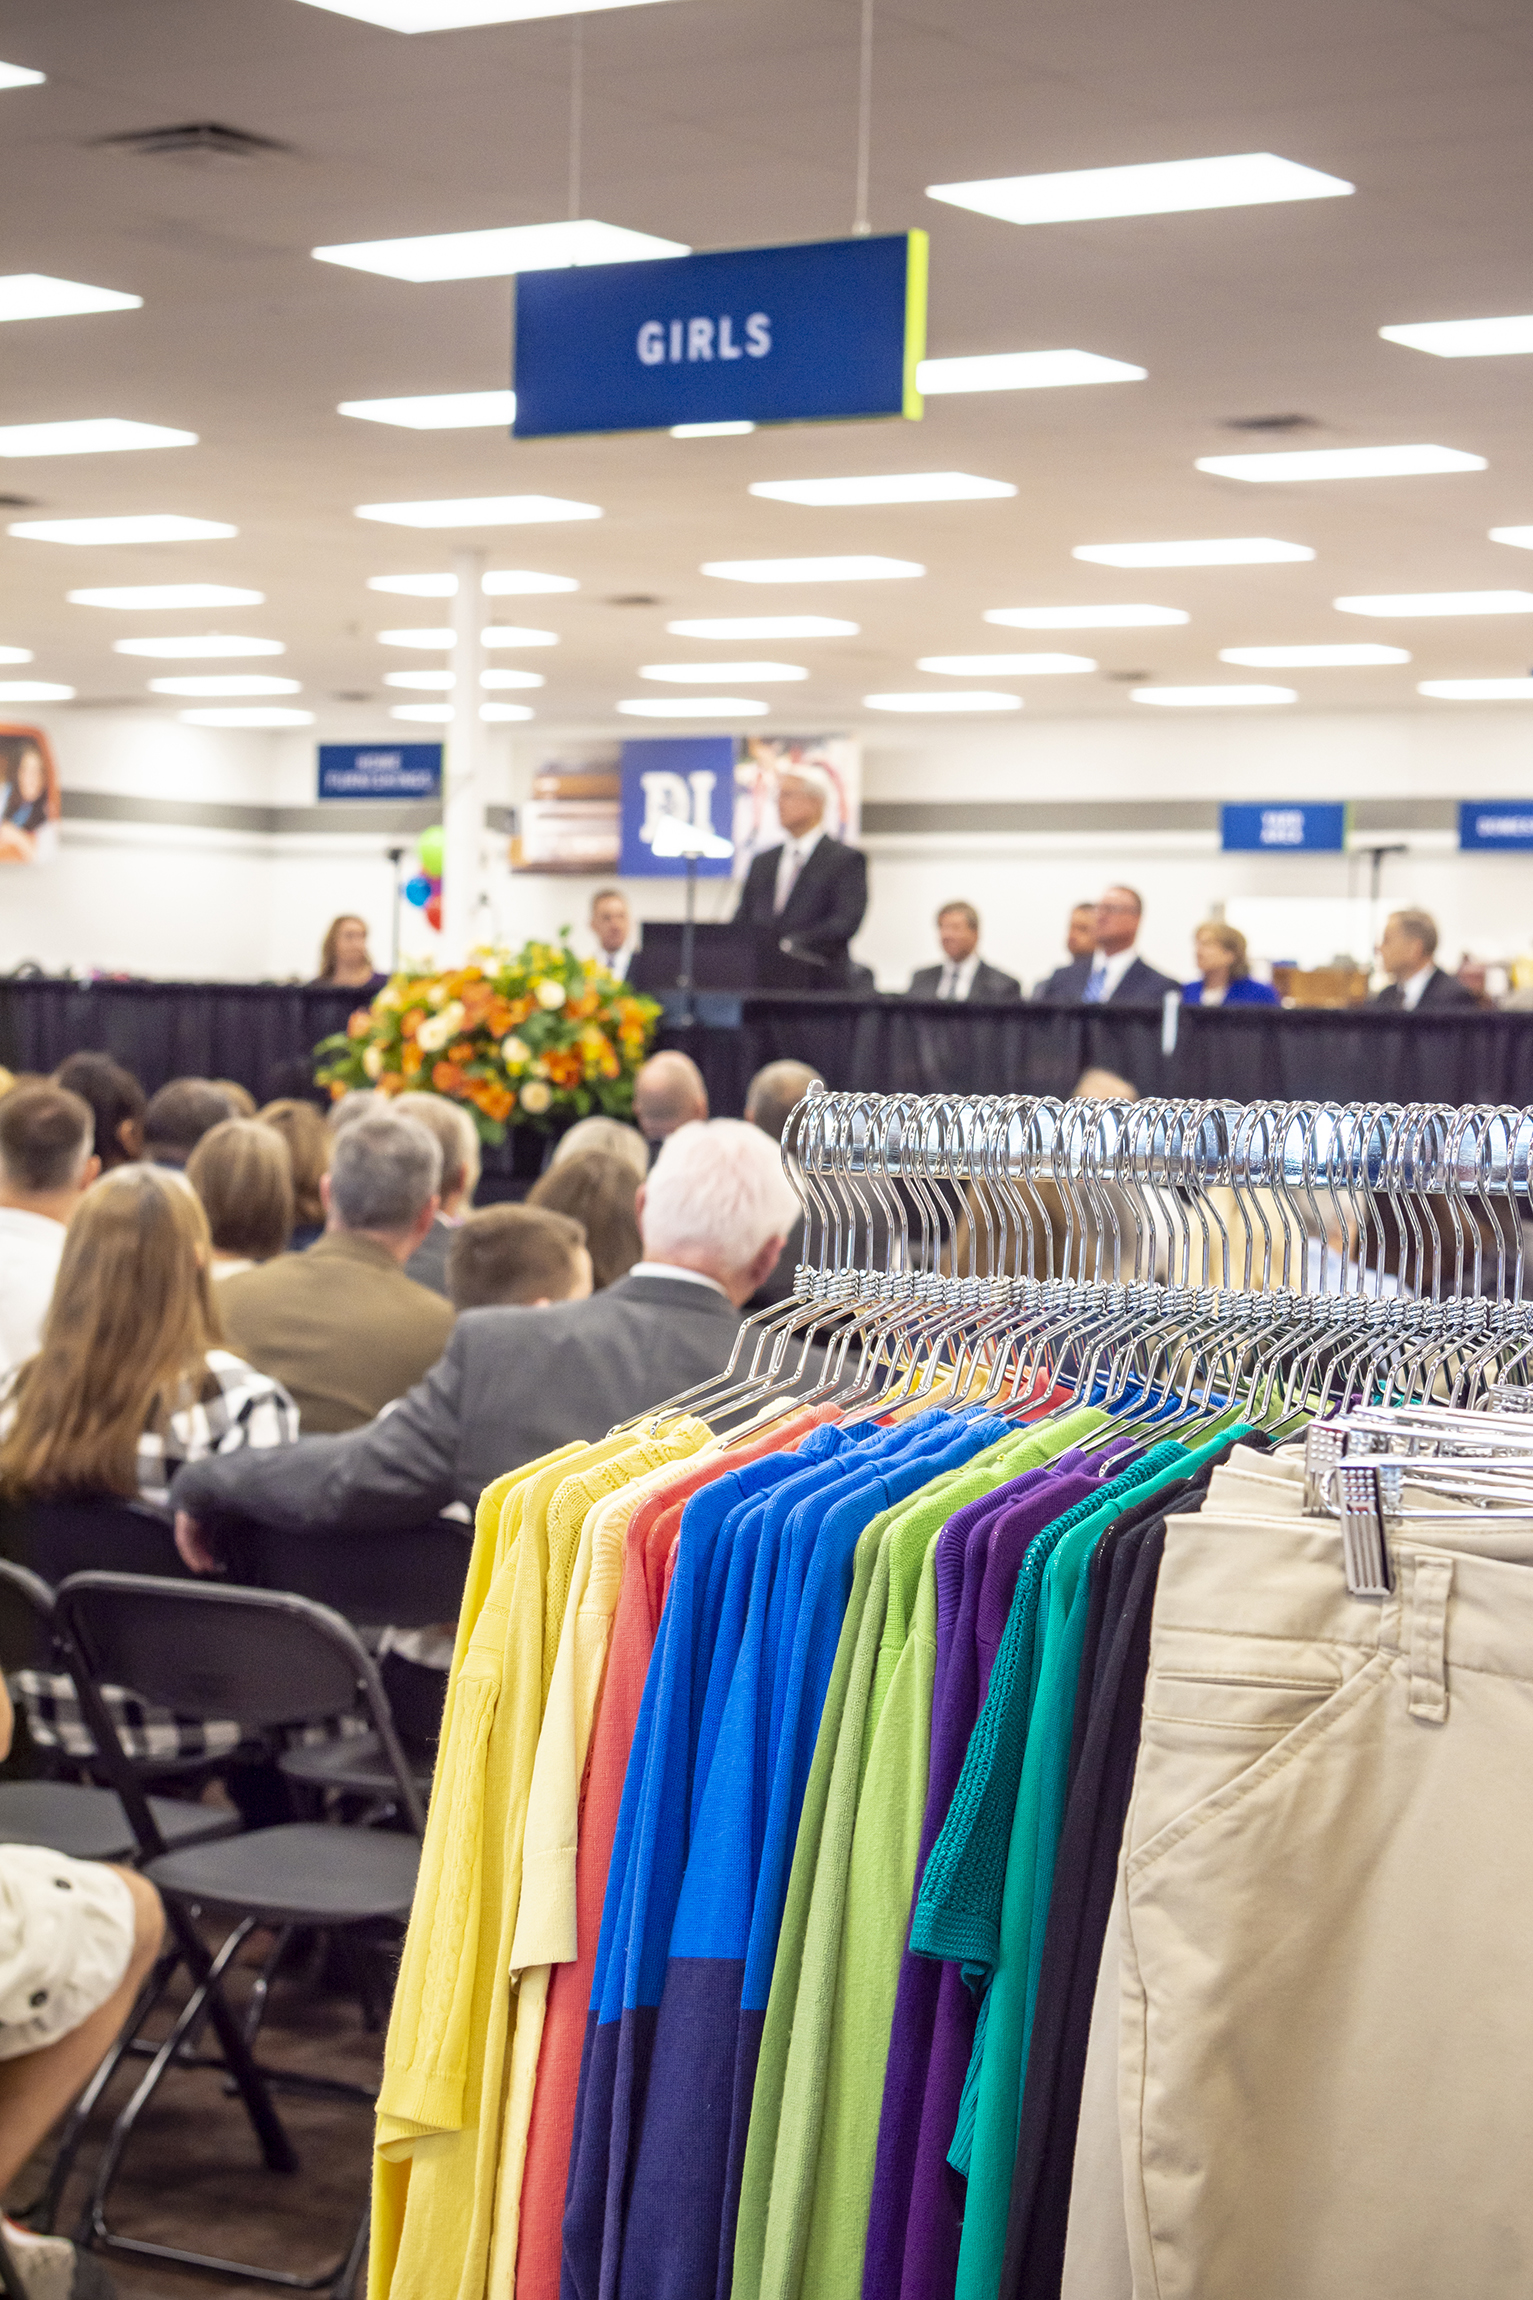 Bishop Dean M. Davies of the Presiding Bishopric of The Church of Jesus Christ of Latter-day Saints speaks at the dedication of the new Deseret Industries in Gilbert, Arizona, Oct. 20, 2018.